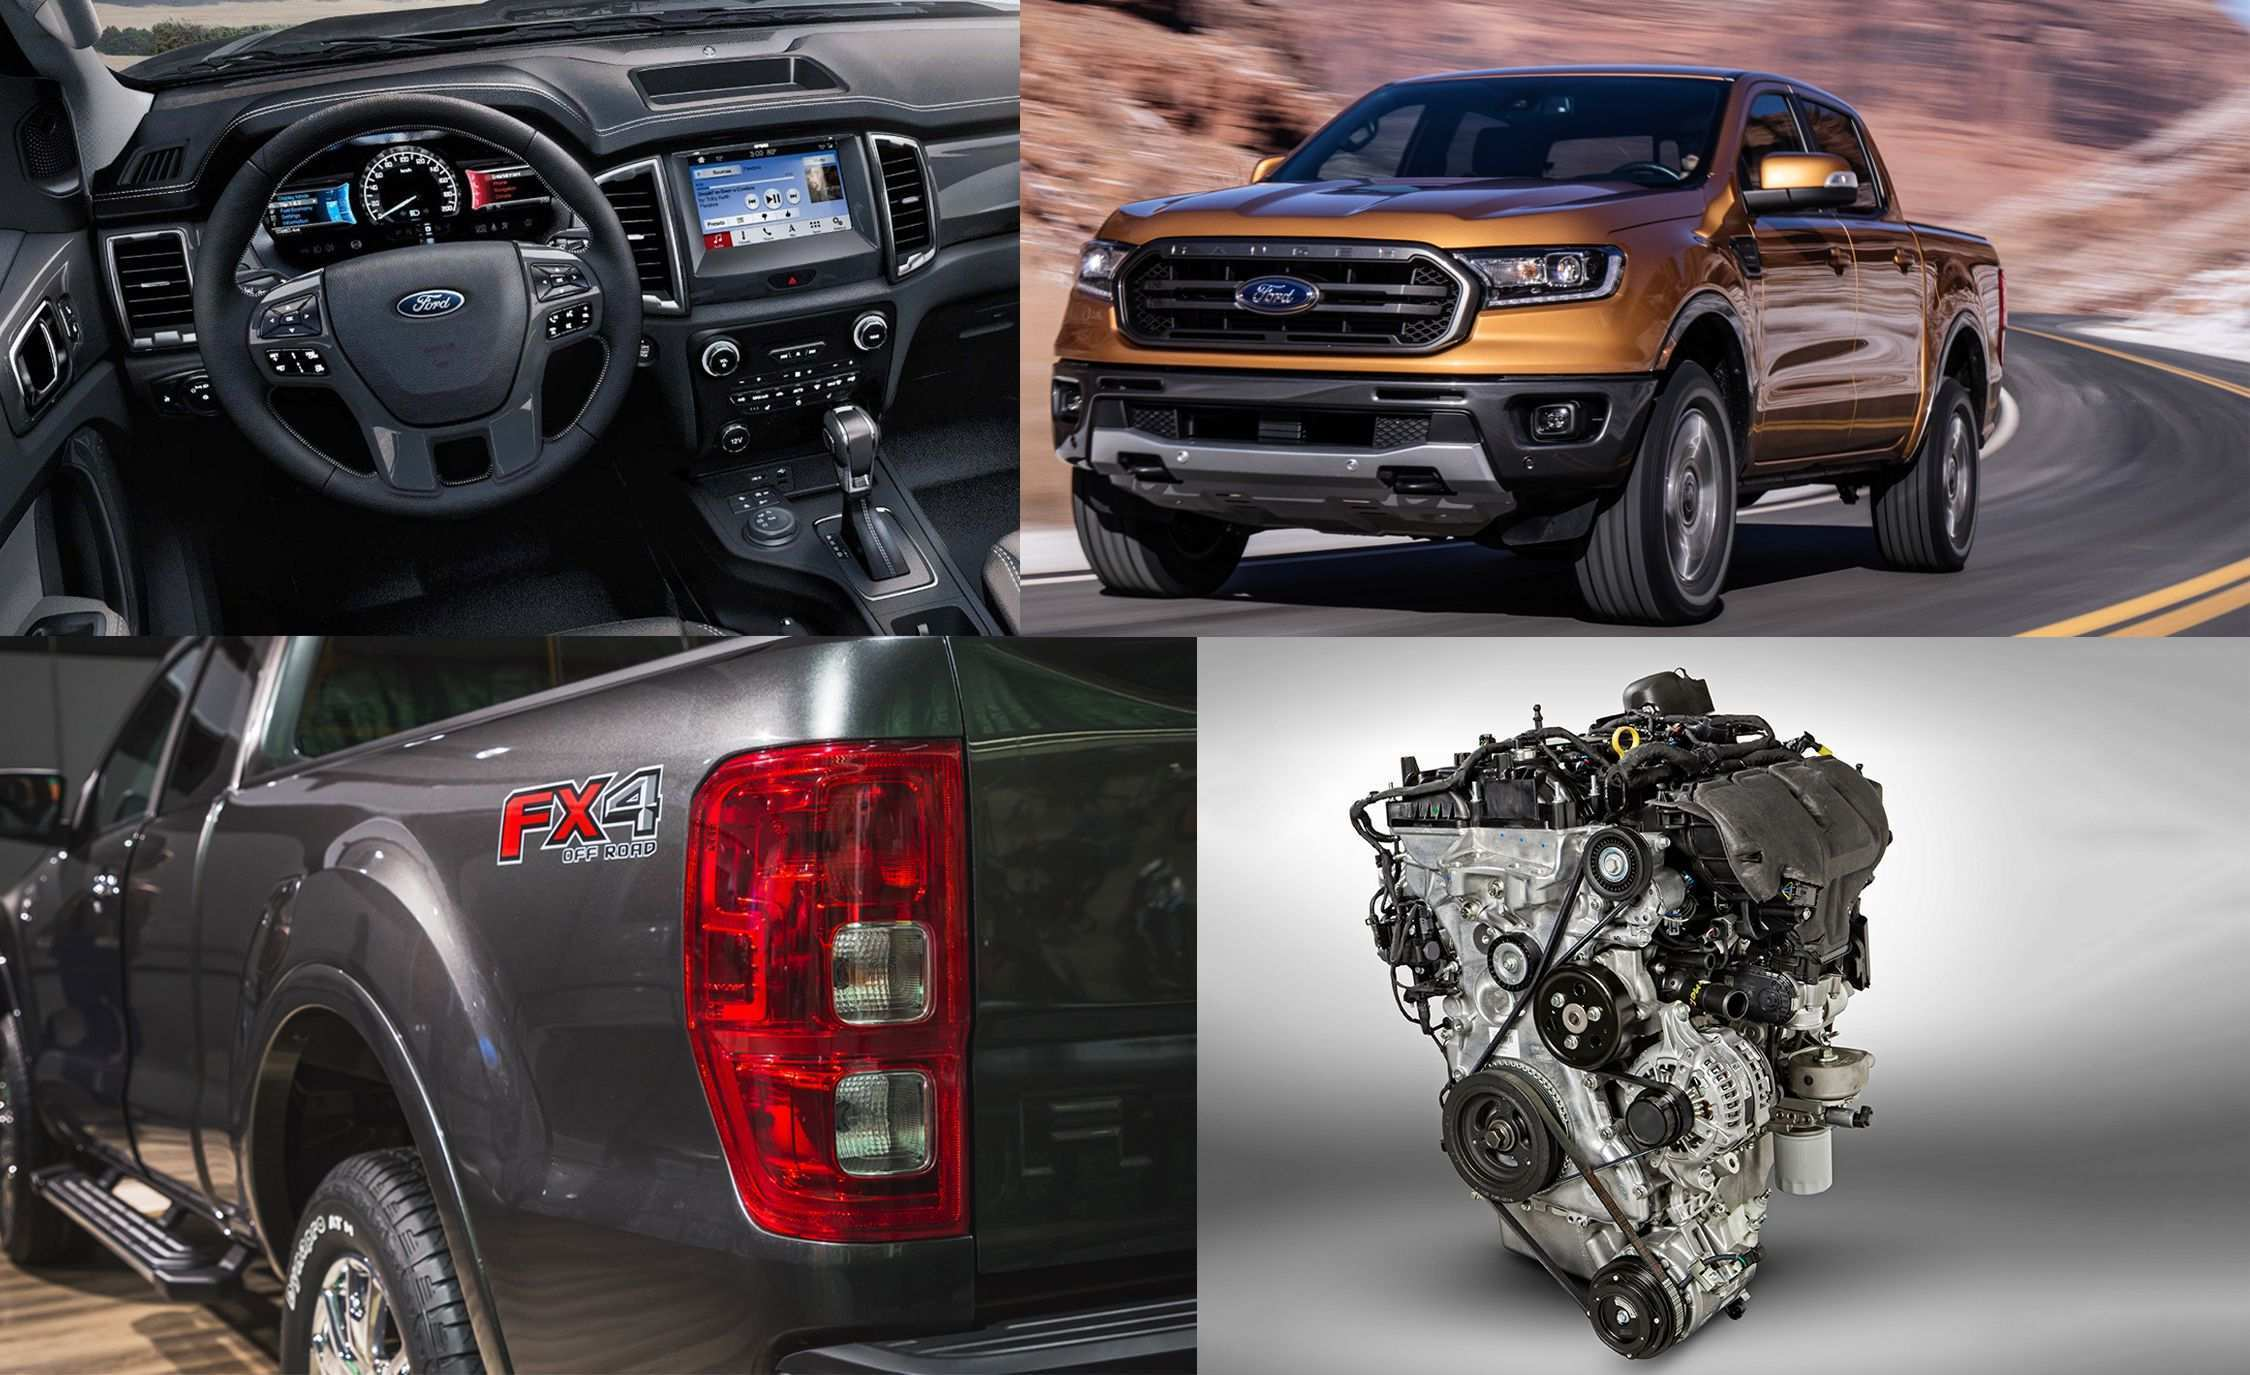 49 The 2019 Ford Ranger Engine Options Ratings for 2019 Ford Ranger Engine Options